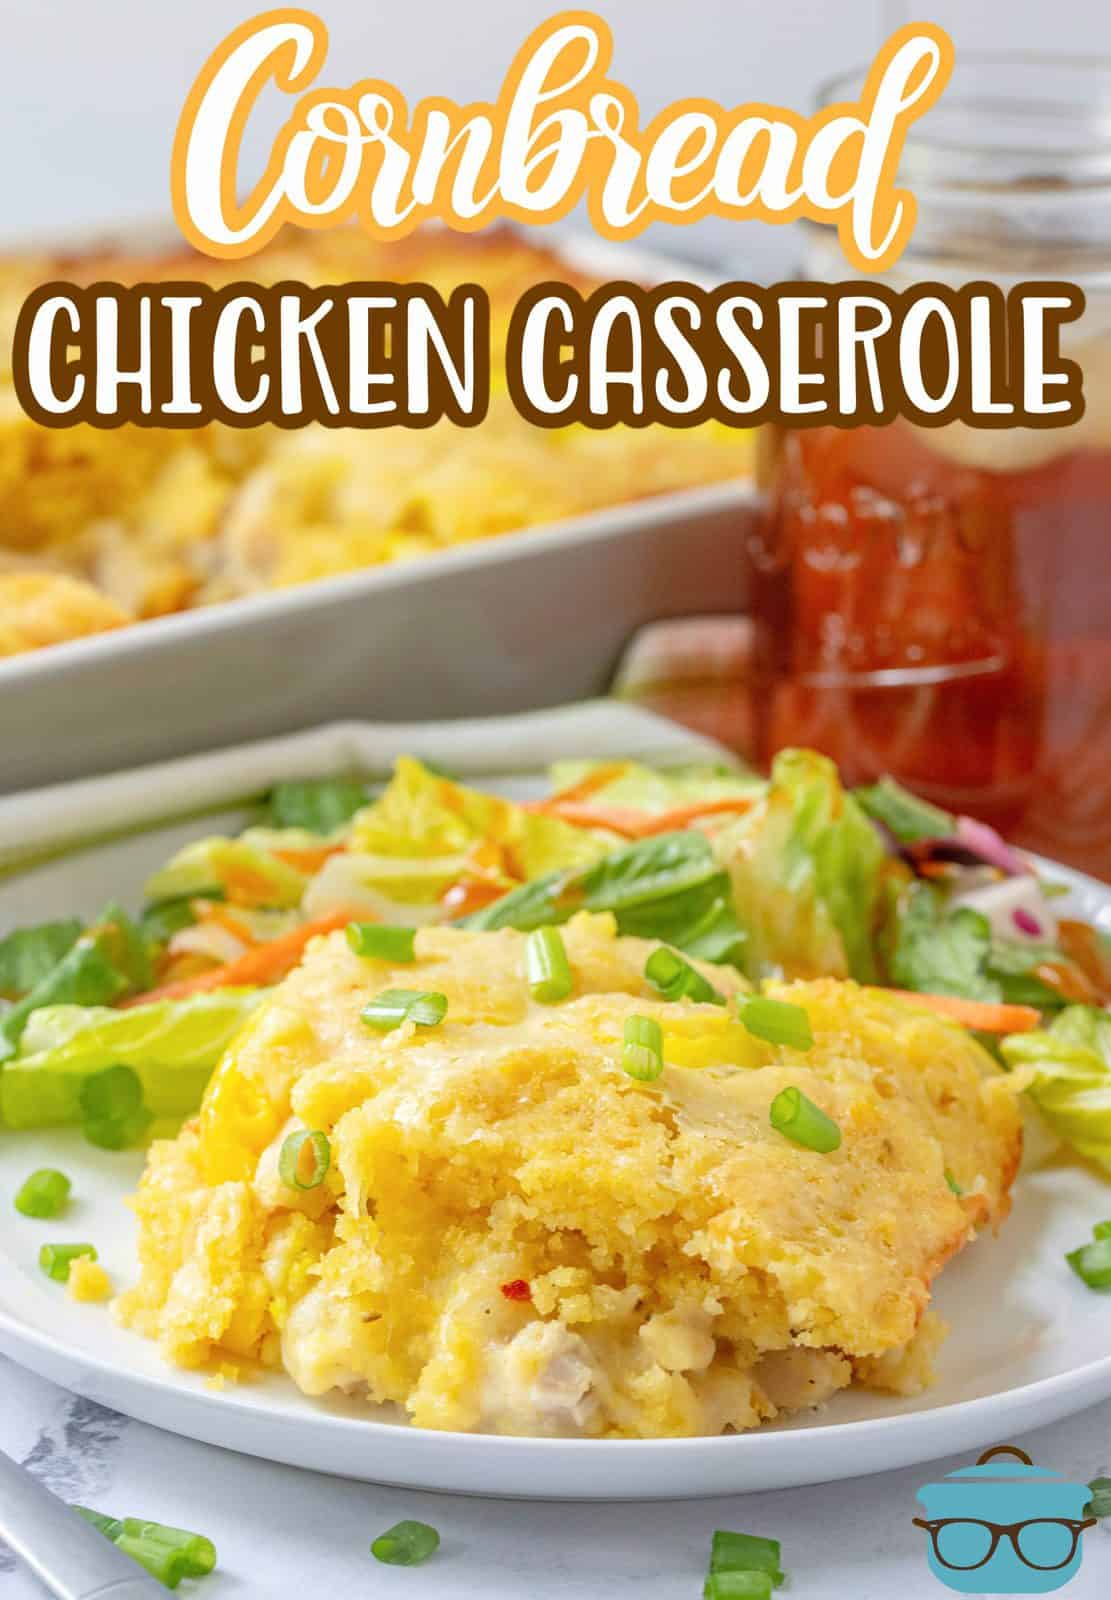 Easy Cornbread Chicken Casserole recipe from The Country Cook. Slice of cornbread casserole shown on a round white plate with a side salad.